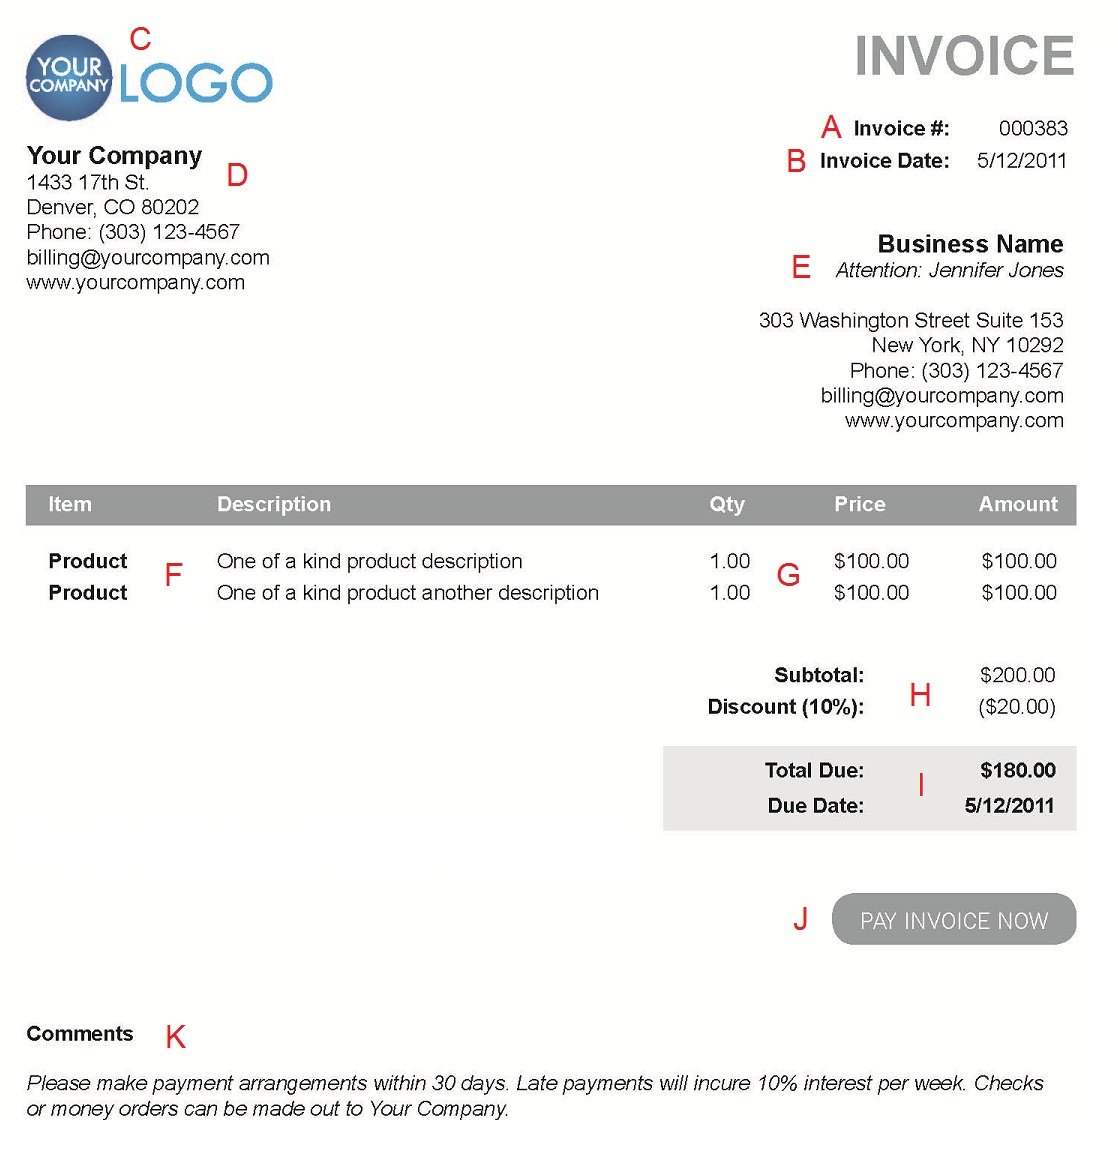 Soulfulpowerus  Marvellous The  Different Sections Of An Electronic Payment Invoice With Outstanding A  With Awesome Preliminary Invoice Also Rent Invoice Form In Addition Cool Invoices And Federal Express Commercial Invoice As Well As Invoice Statements Additionally Drive Invoice Template From Paysimplecom With Soulfulpowerus  Outstanding The  Different Sections Of An Electronic Payment Invoice With Awesome A  And Marvellous Preliminary Invoice Also Rent Invoice Form In Addition Cool Invoices From Paysimplecom